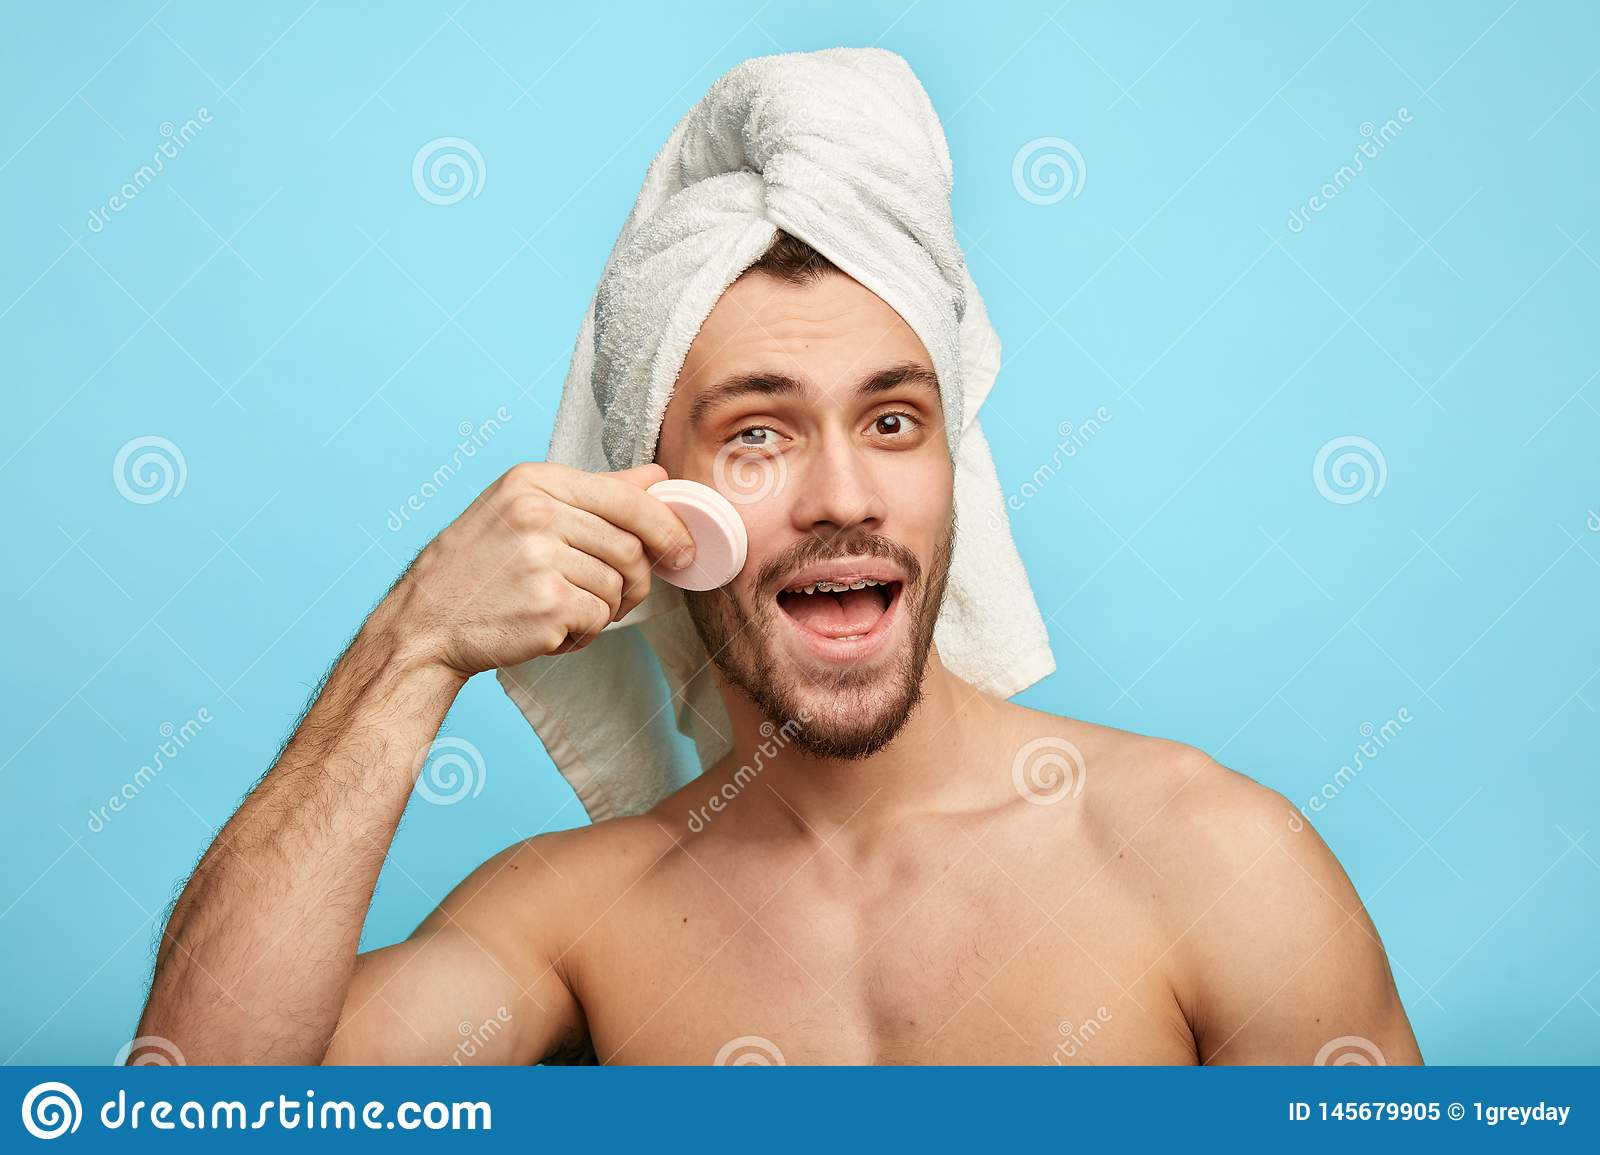 Positive happy man applying powder on his face